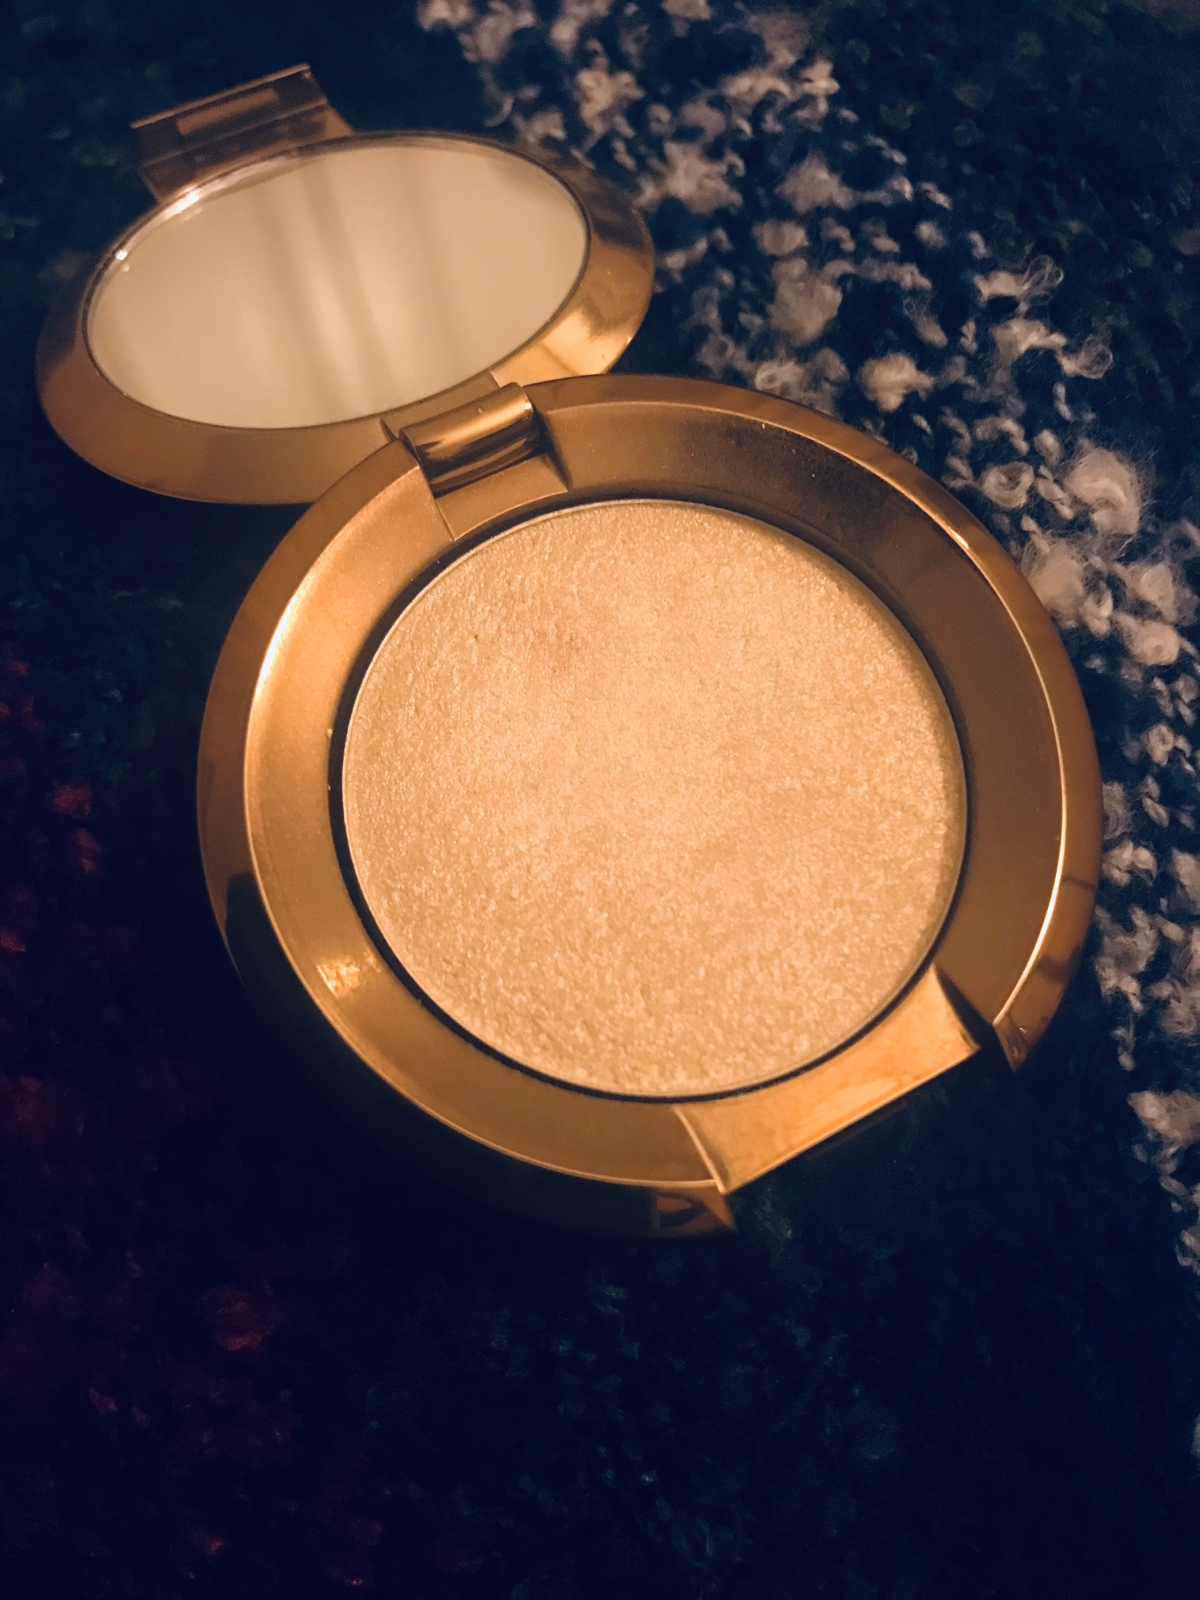 Best of Beauty 2018: Becca Shimmering Skin Perfector in Vanilla Quartz